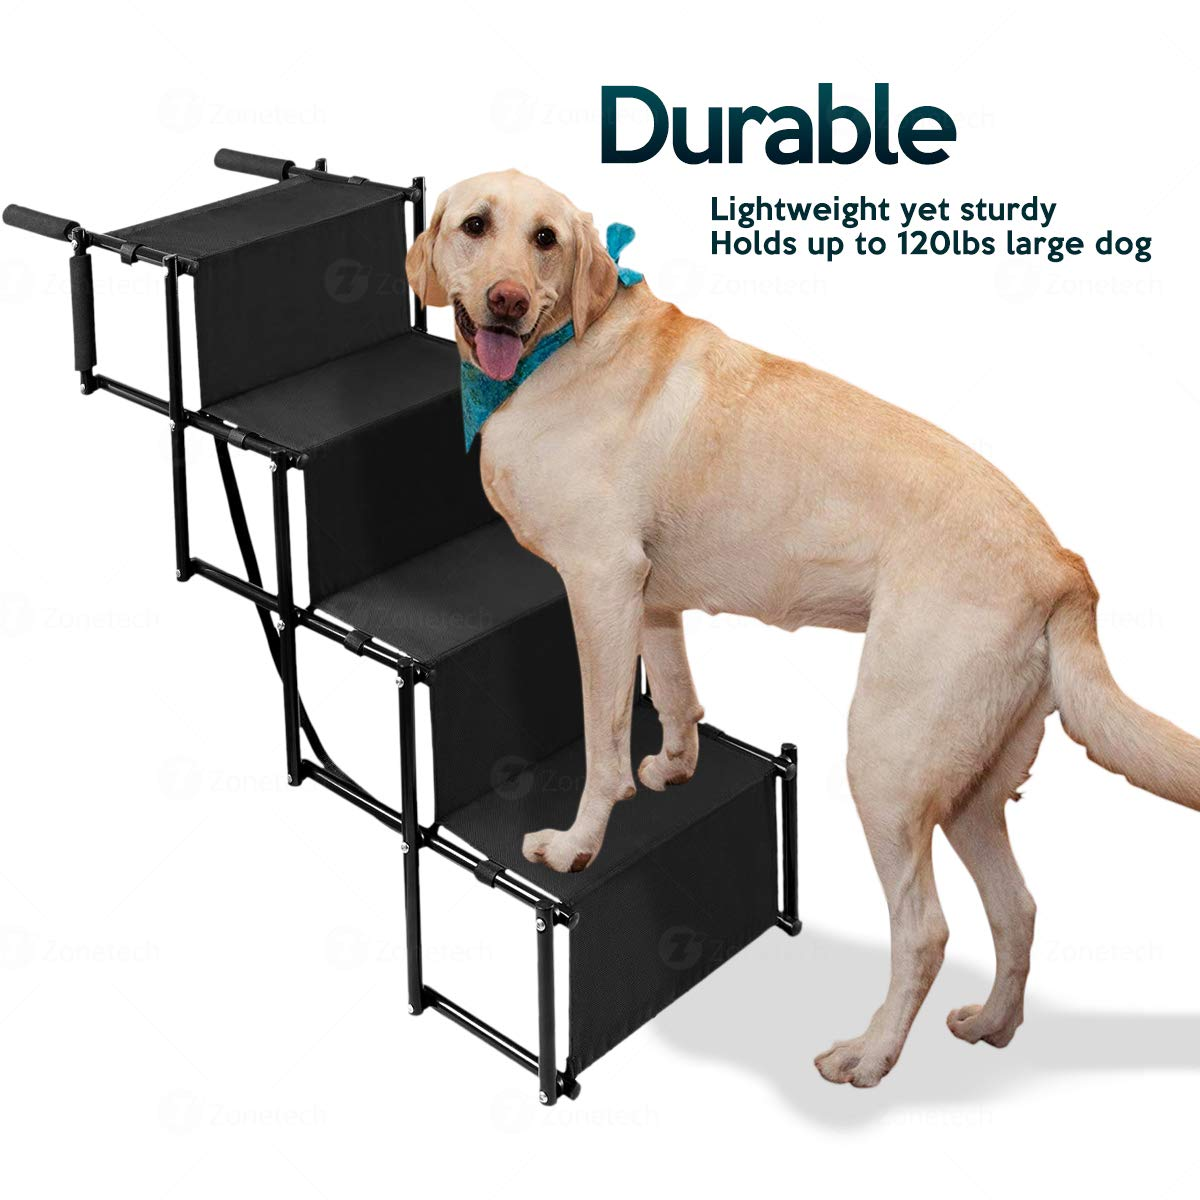 Premium Quality Lightweight Portable Adjustable Metal Frame Folding Ramp Stairs Perfect for Any Size of House Pets Zone Tech Car Pet Foldable Step Stair